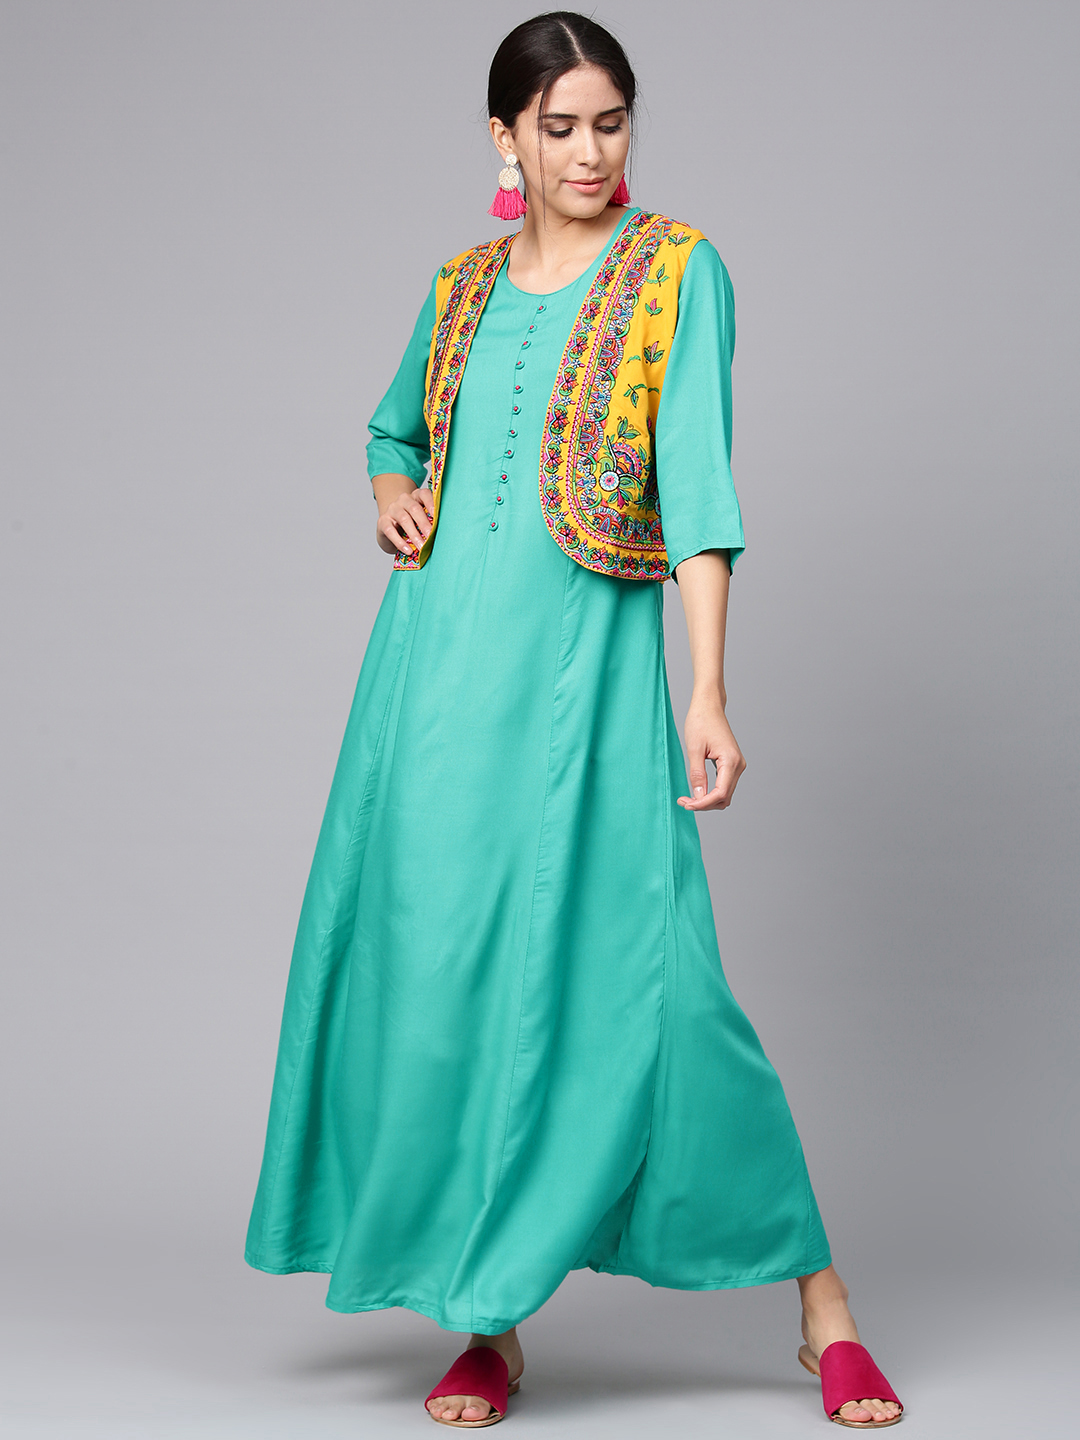 ffe3be401d Shree Women Green   Mustard Yellow Solid Maxi Dress with Ethnic Jacket